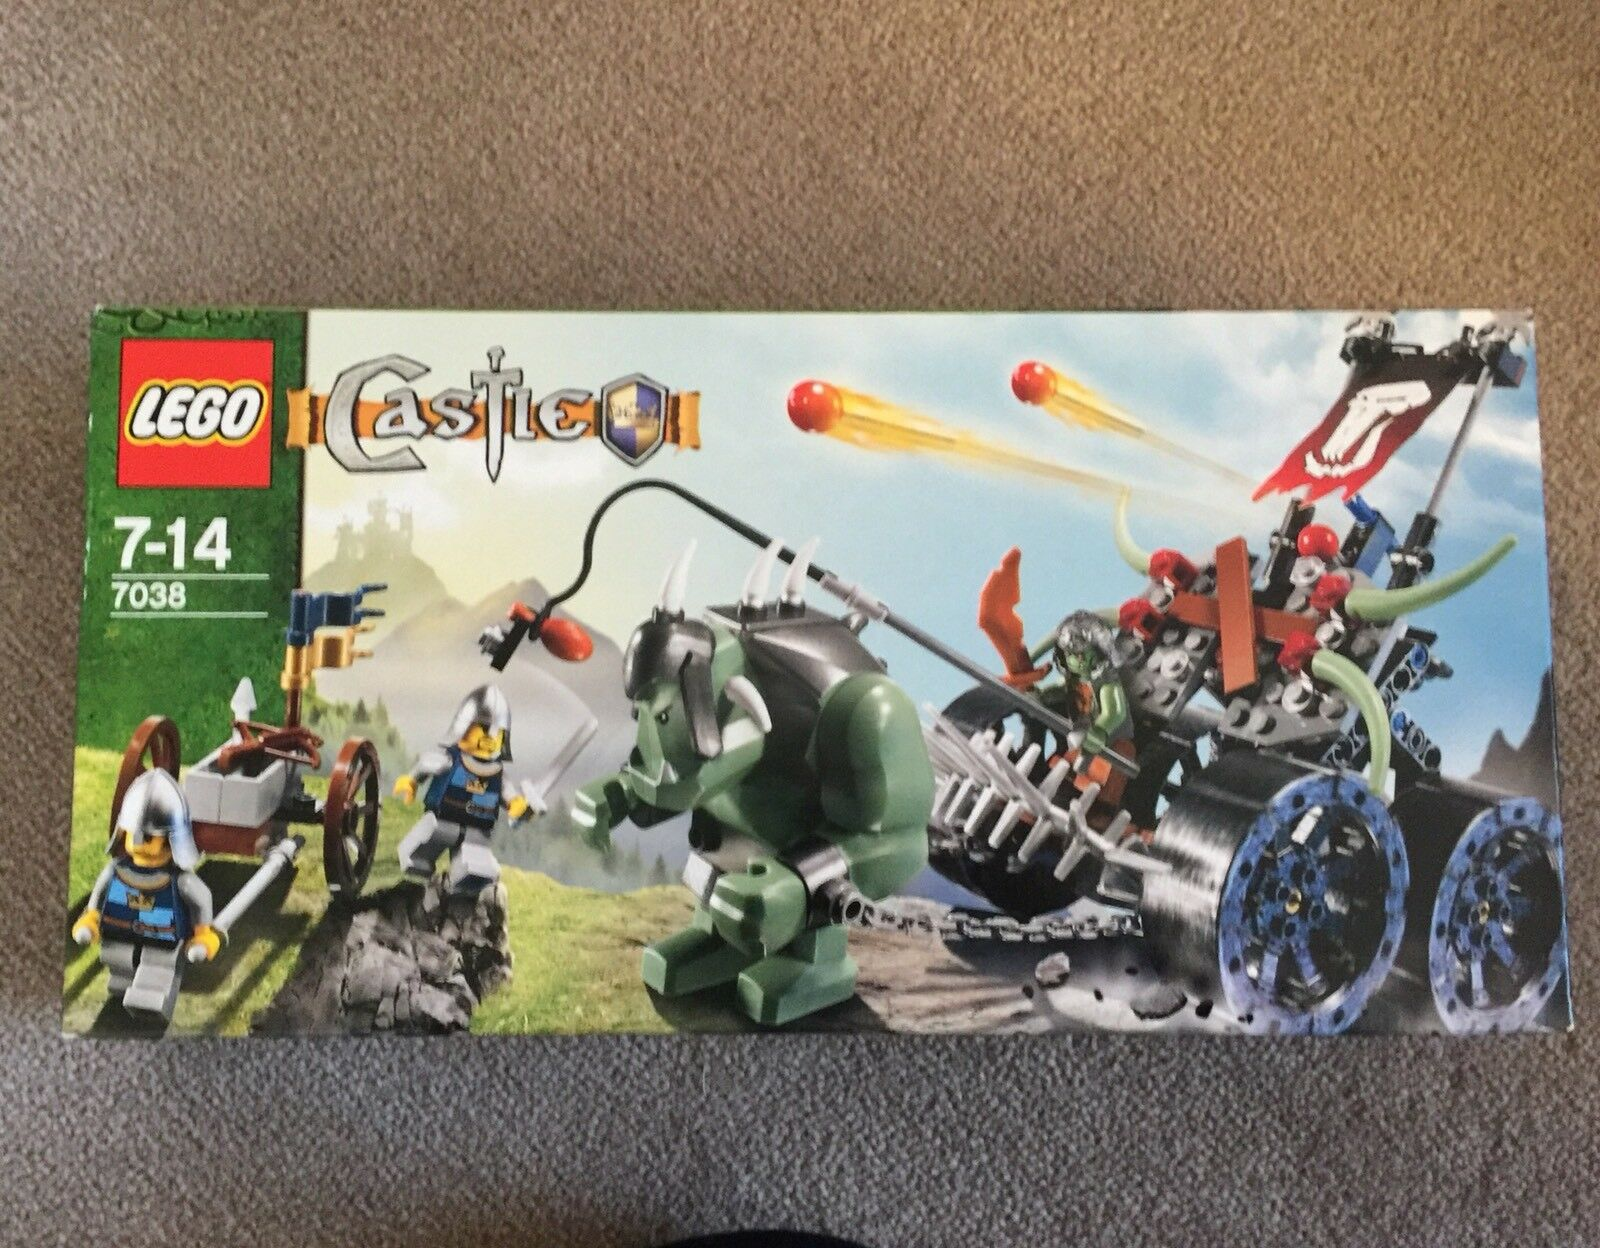 Limited New In Box Lego 7038 Troll Assault Wagon Fantasy Orc Castle Knight